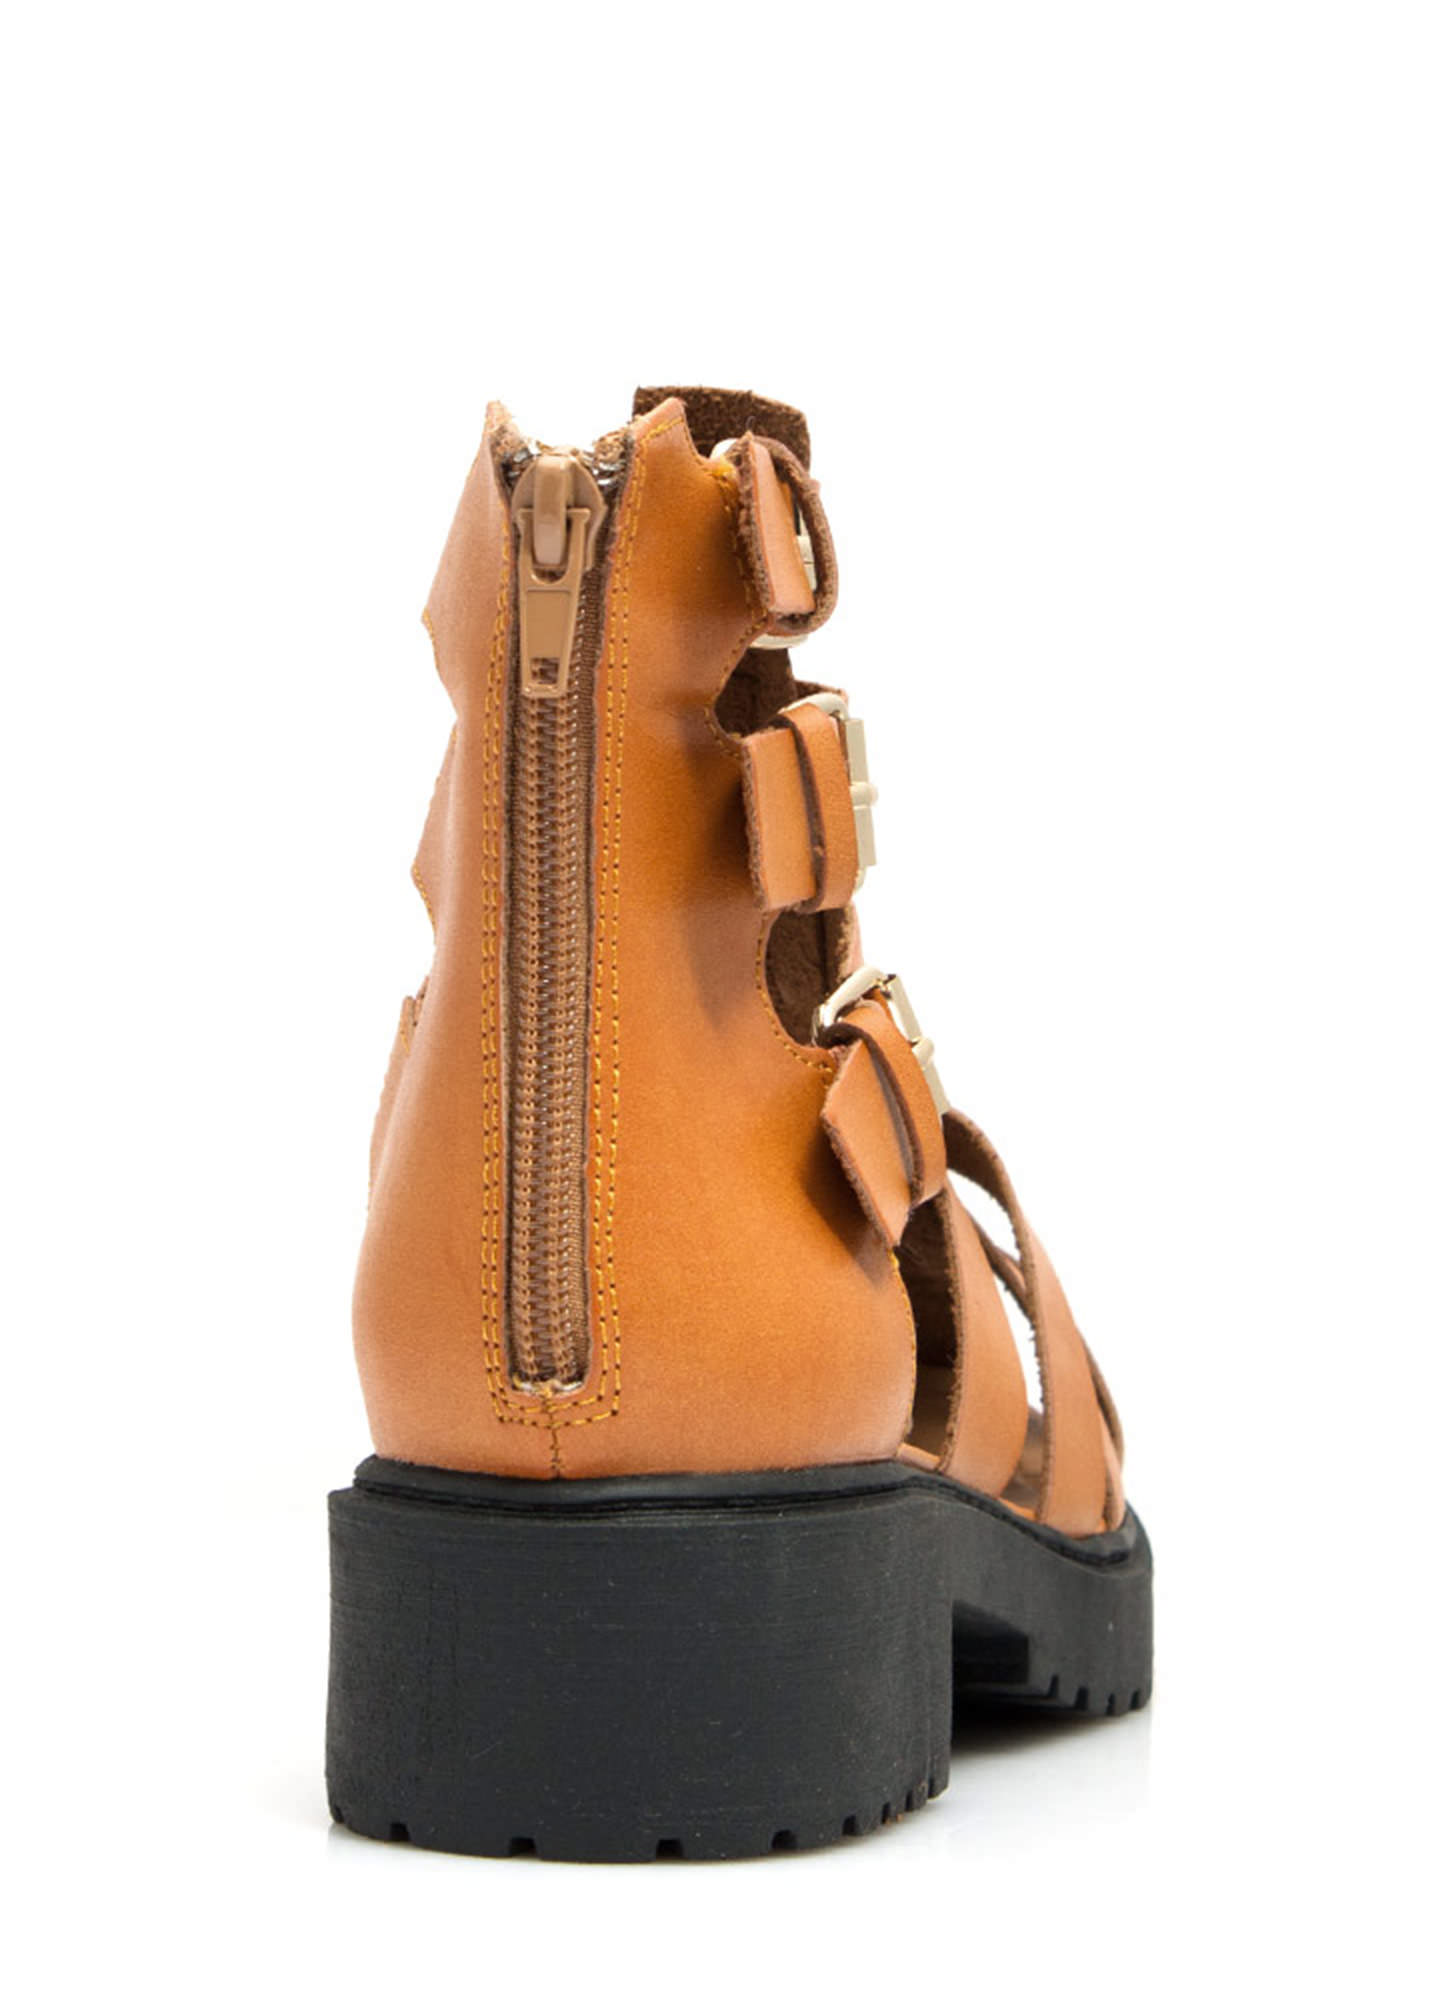 Tri-Cage Buckled Booties CAMEL (Final Sale)